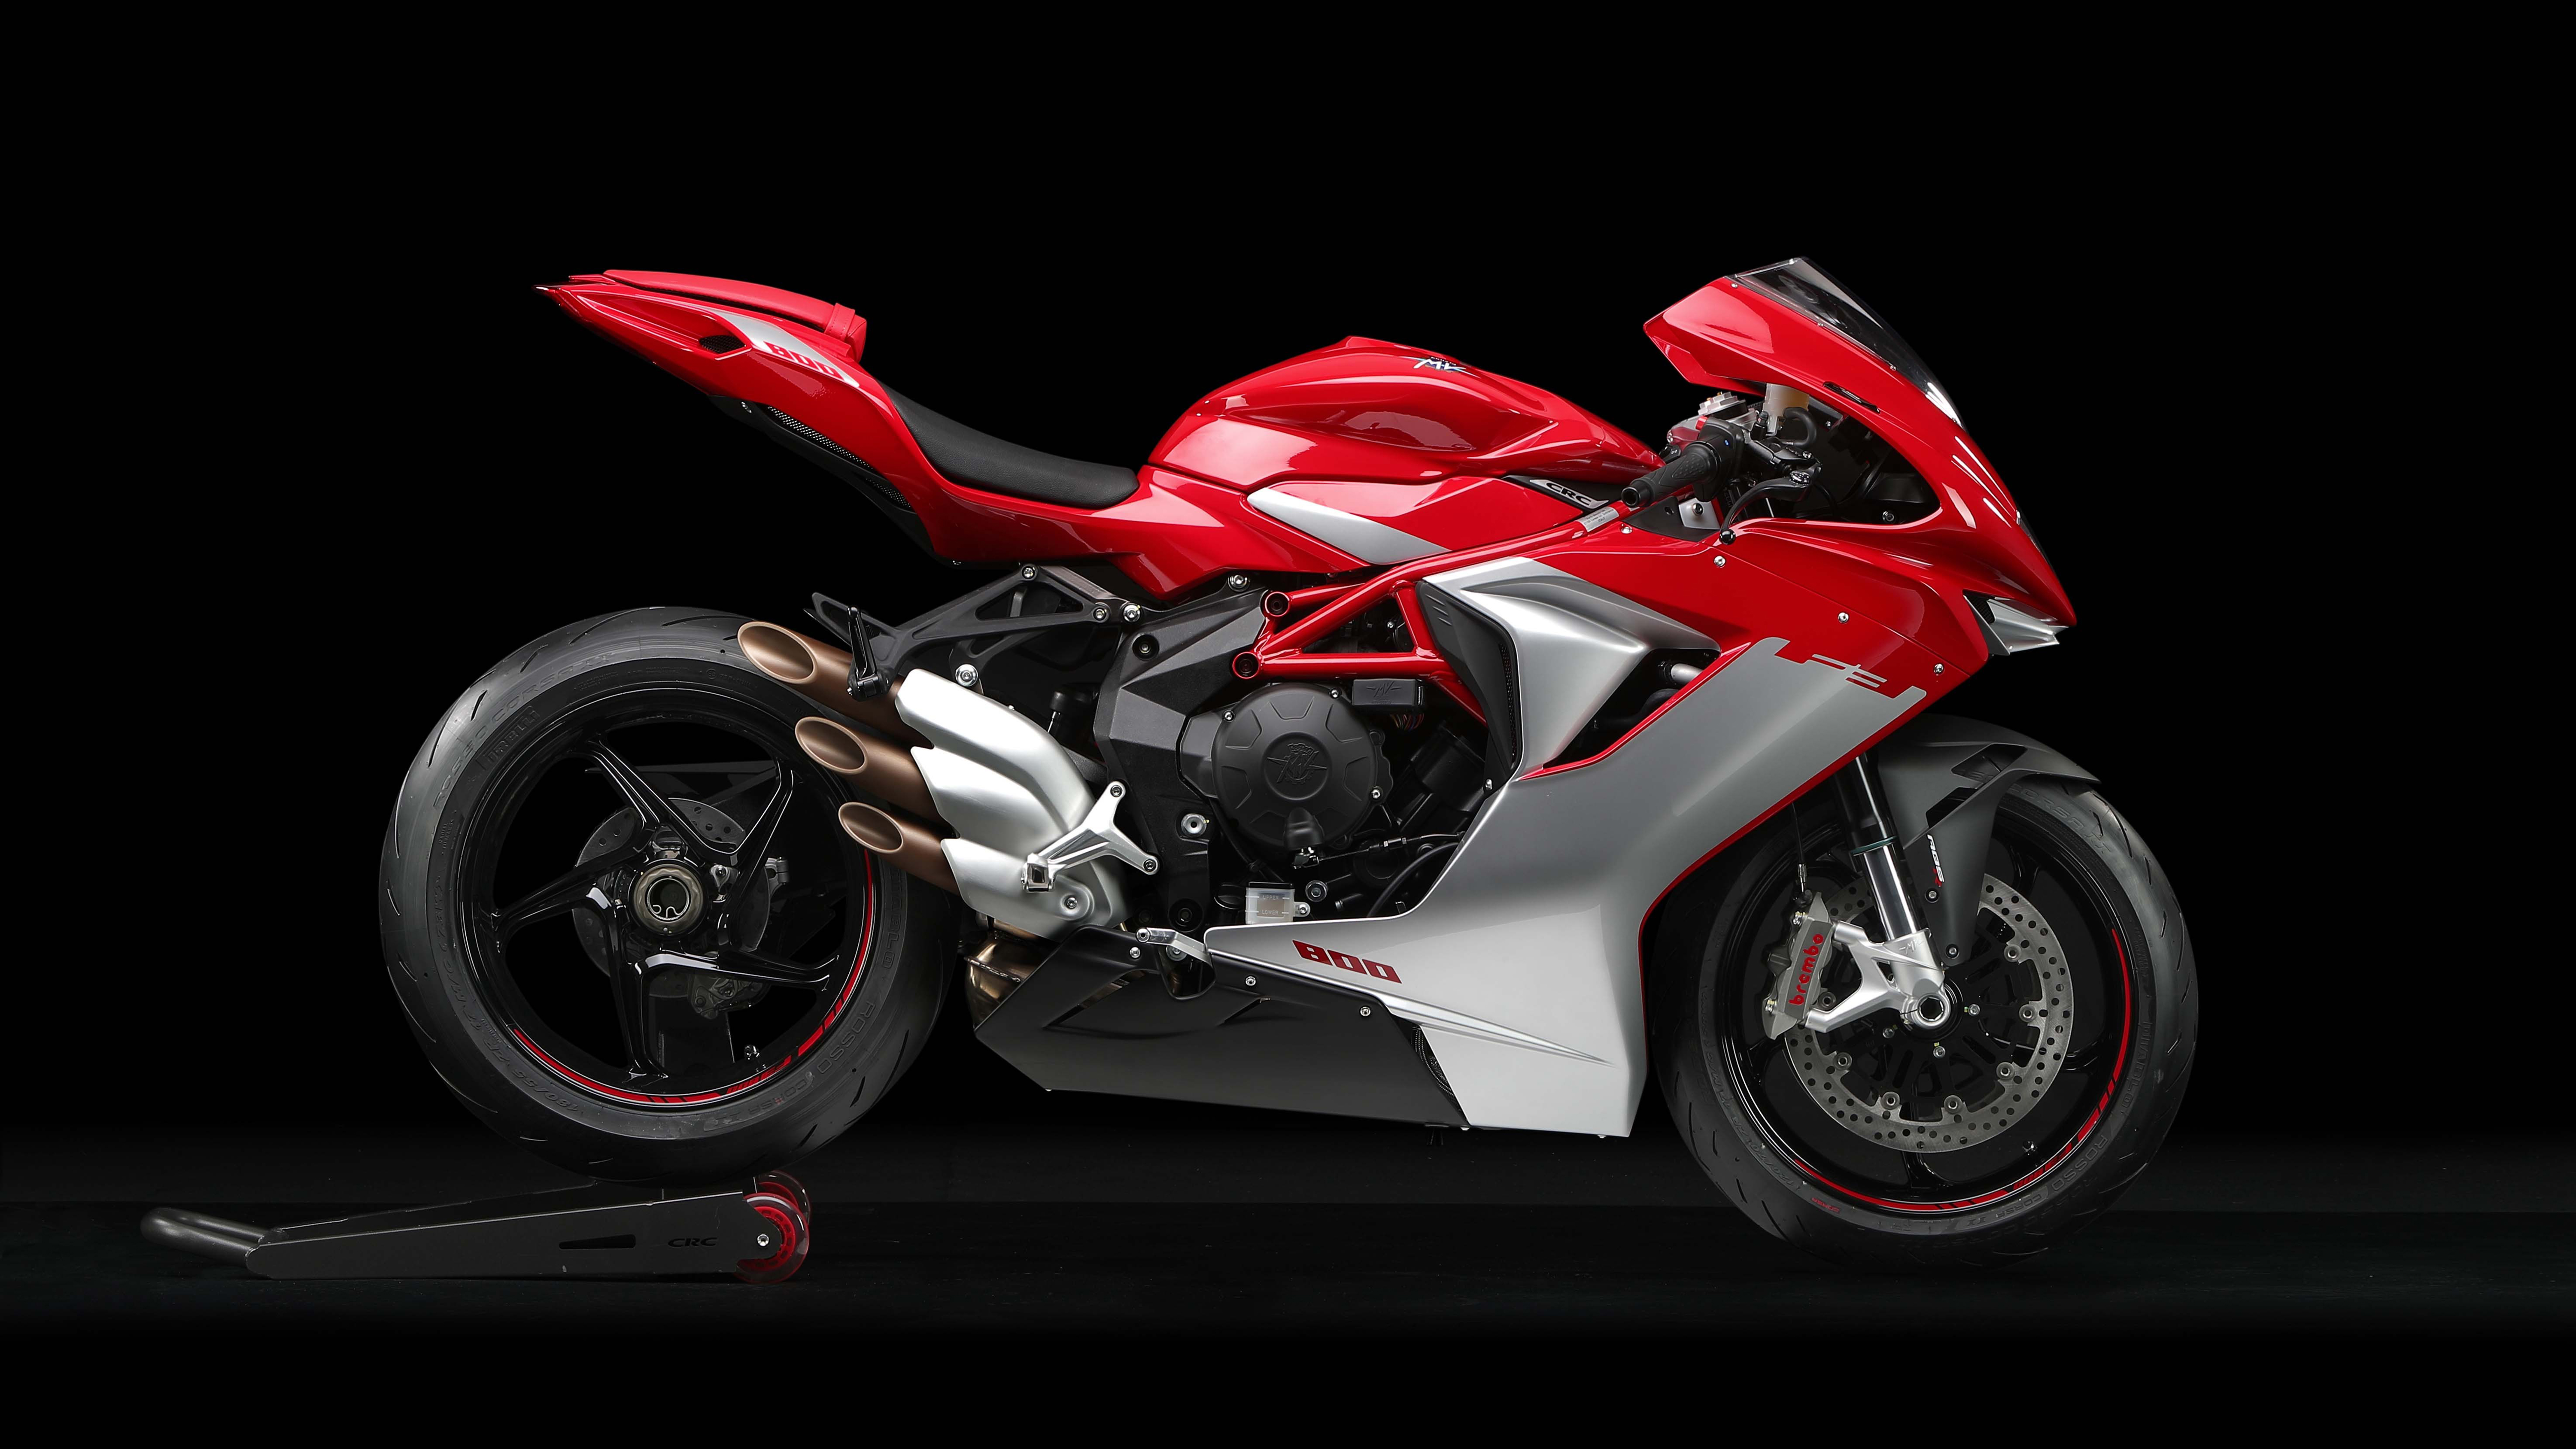 Ducati 1299 Panigale R Final Edition 2019 4K Wallpapers